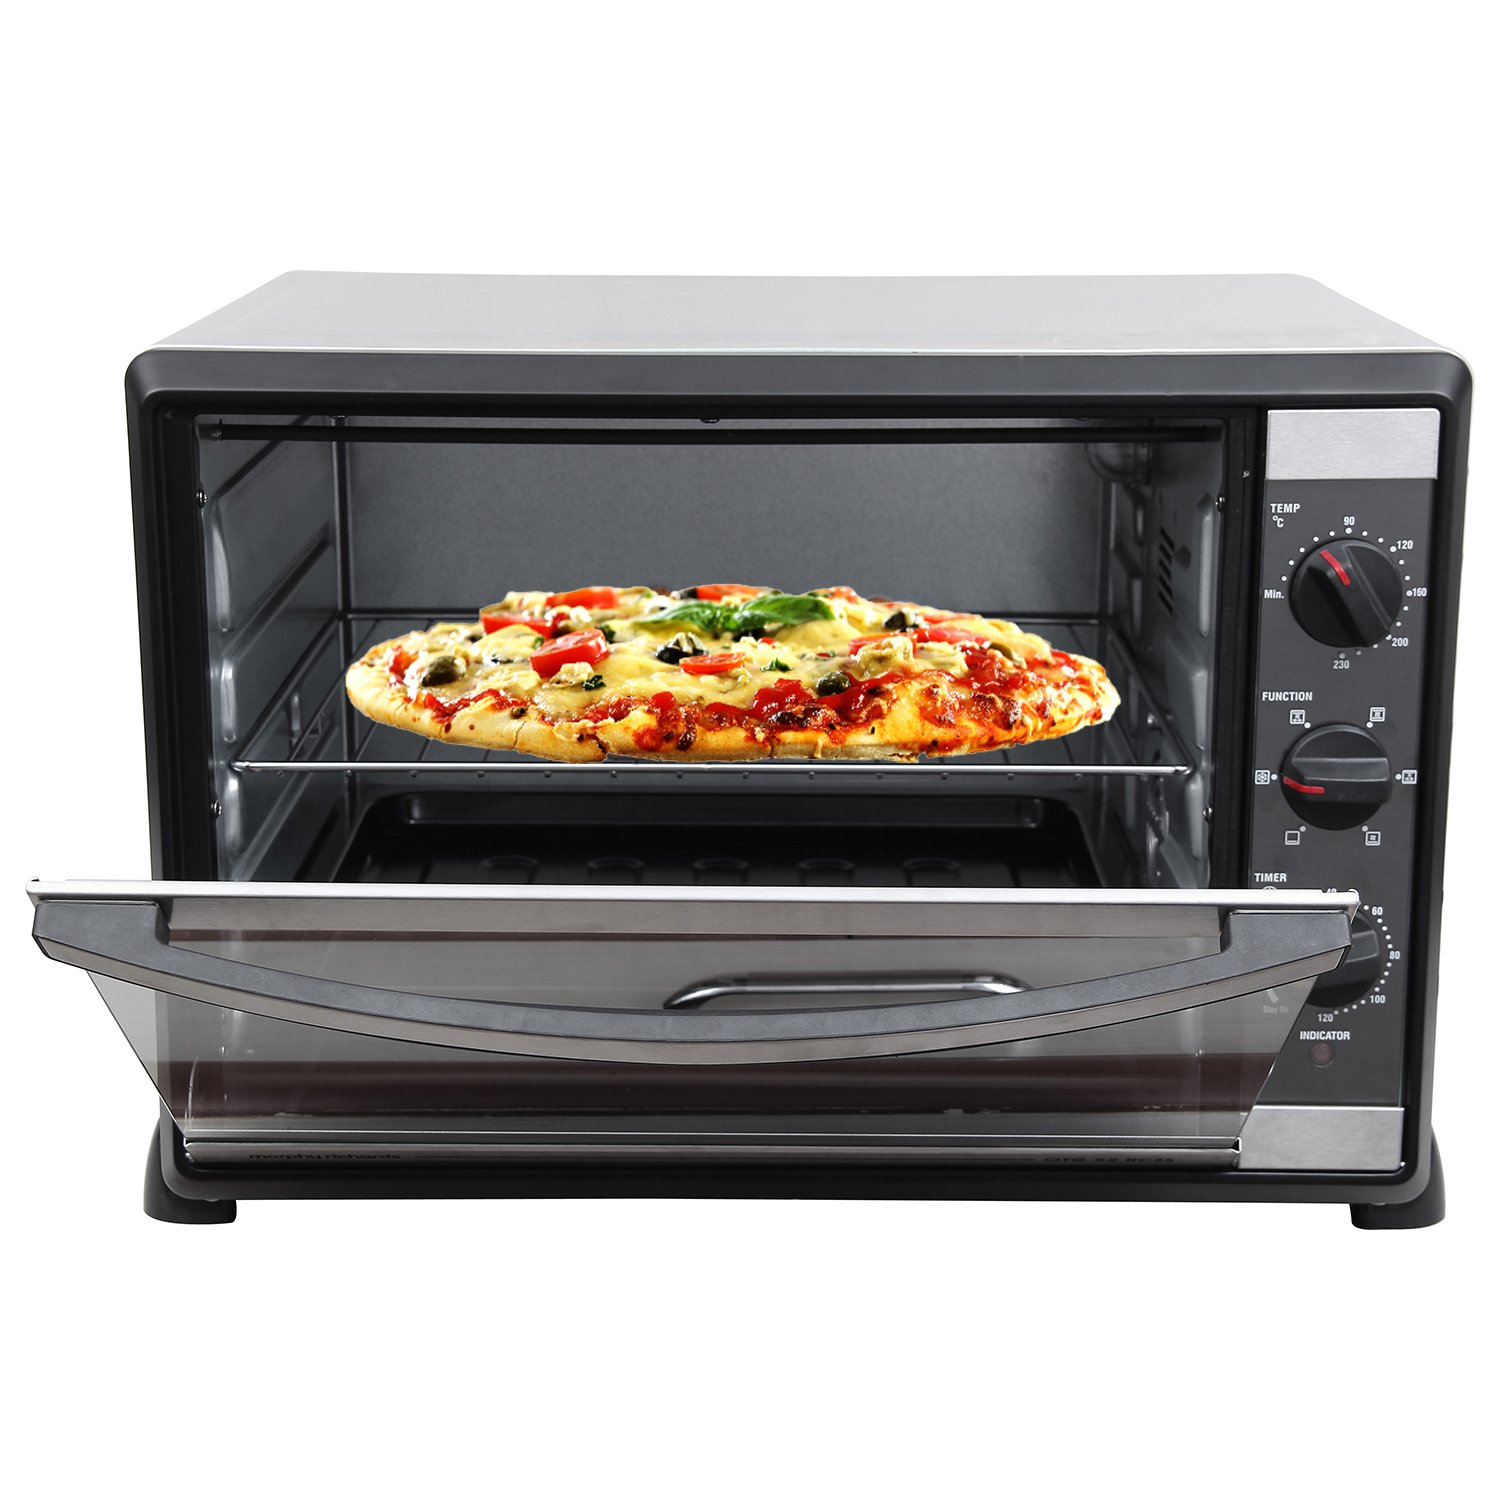 Morphy Richards 52 RCSS (Best OTG Oven for baking and grilling, even toasting)